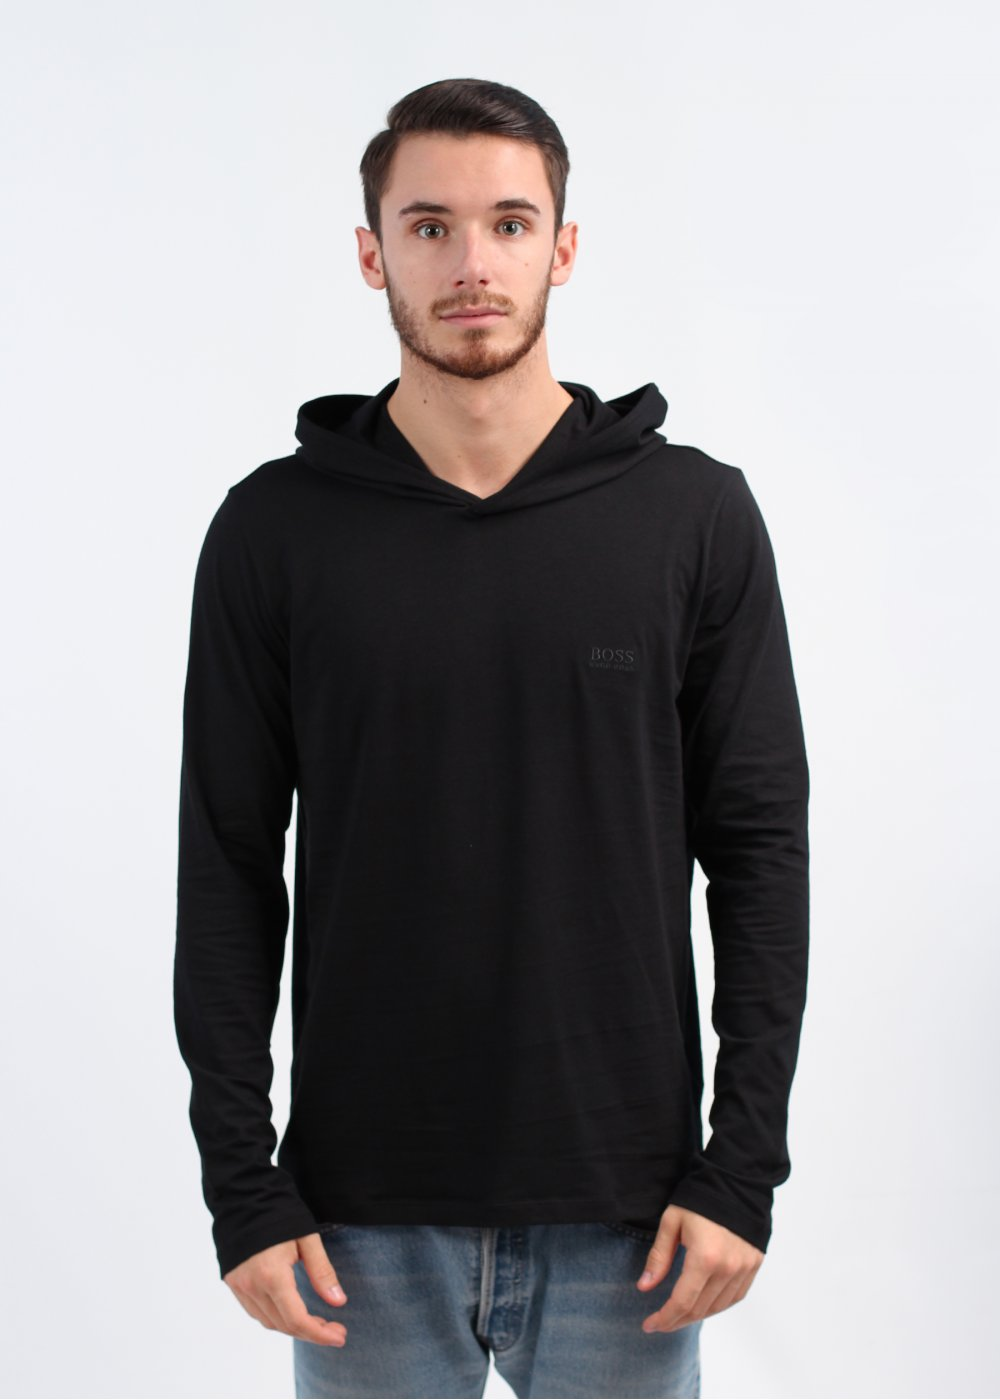 1b195893f Hugo Boss Black Long Sleeve Hooded Shirt - Black